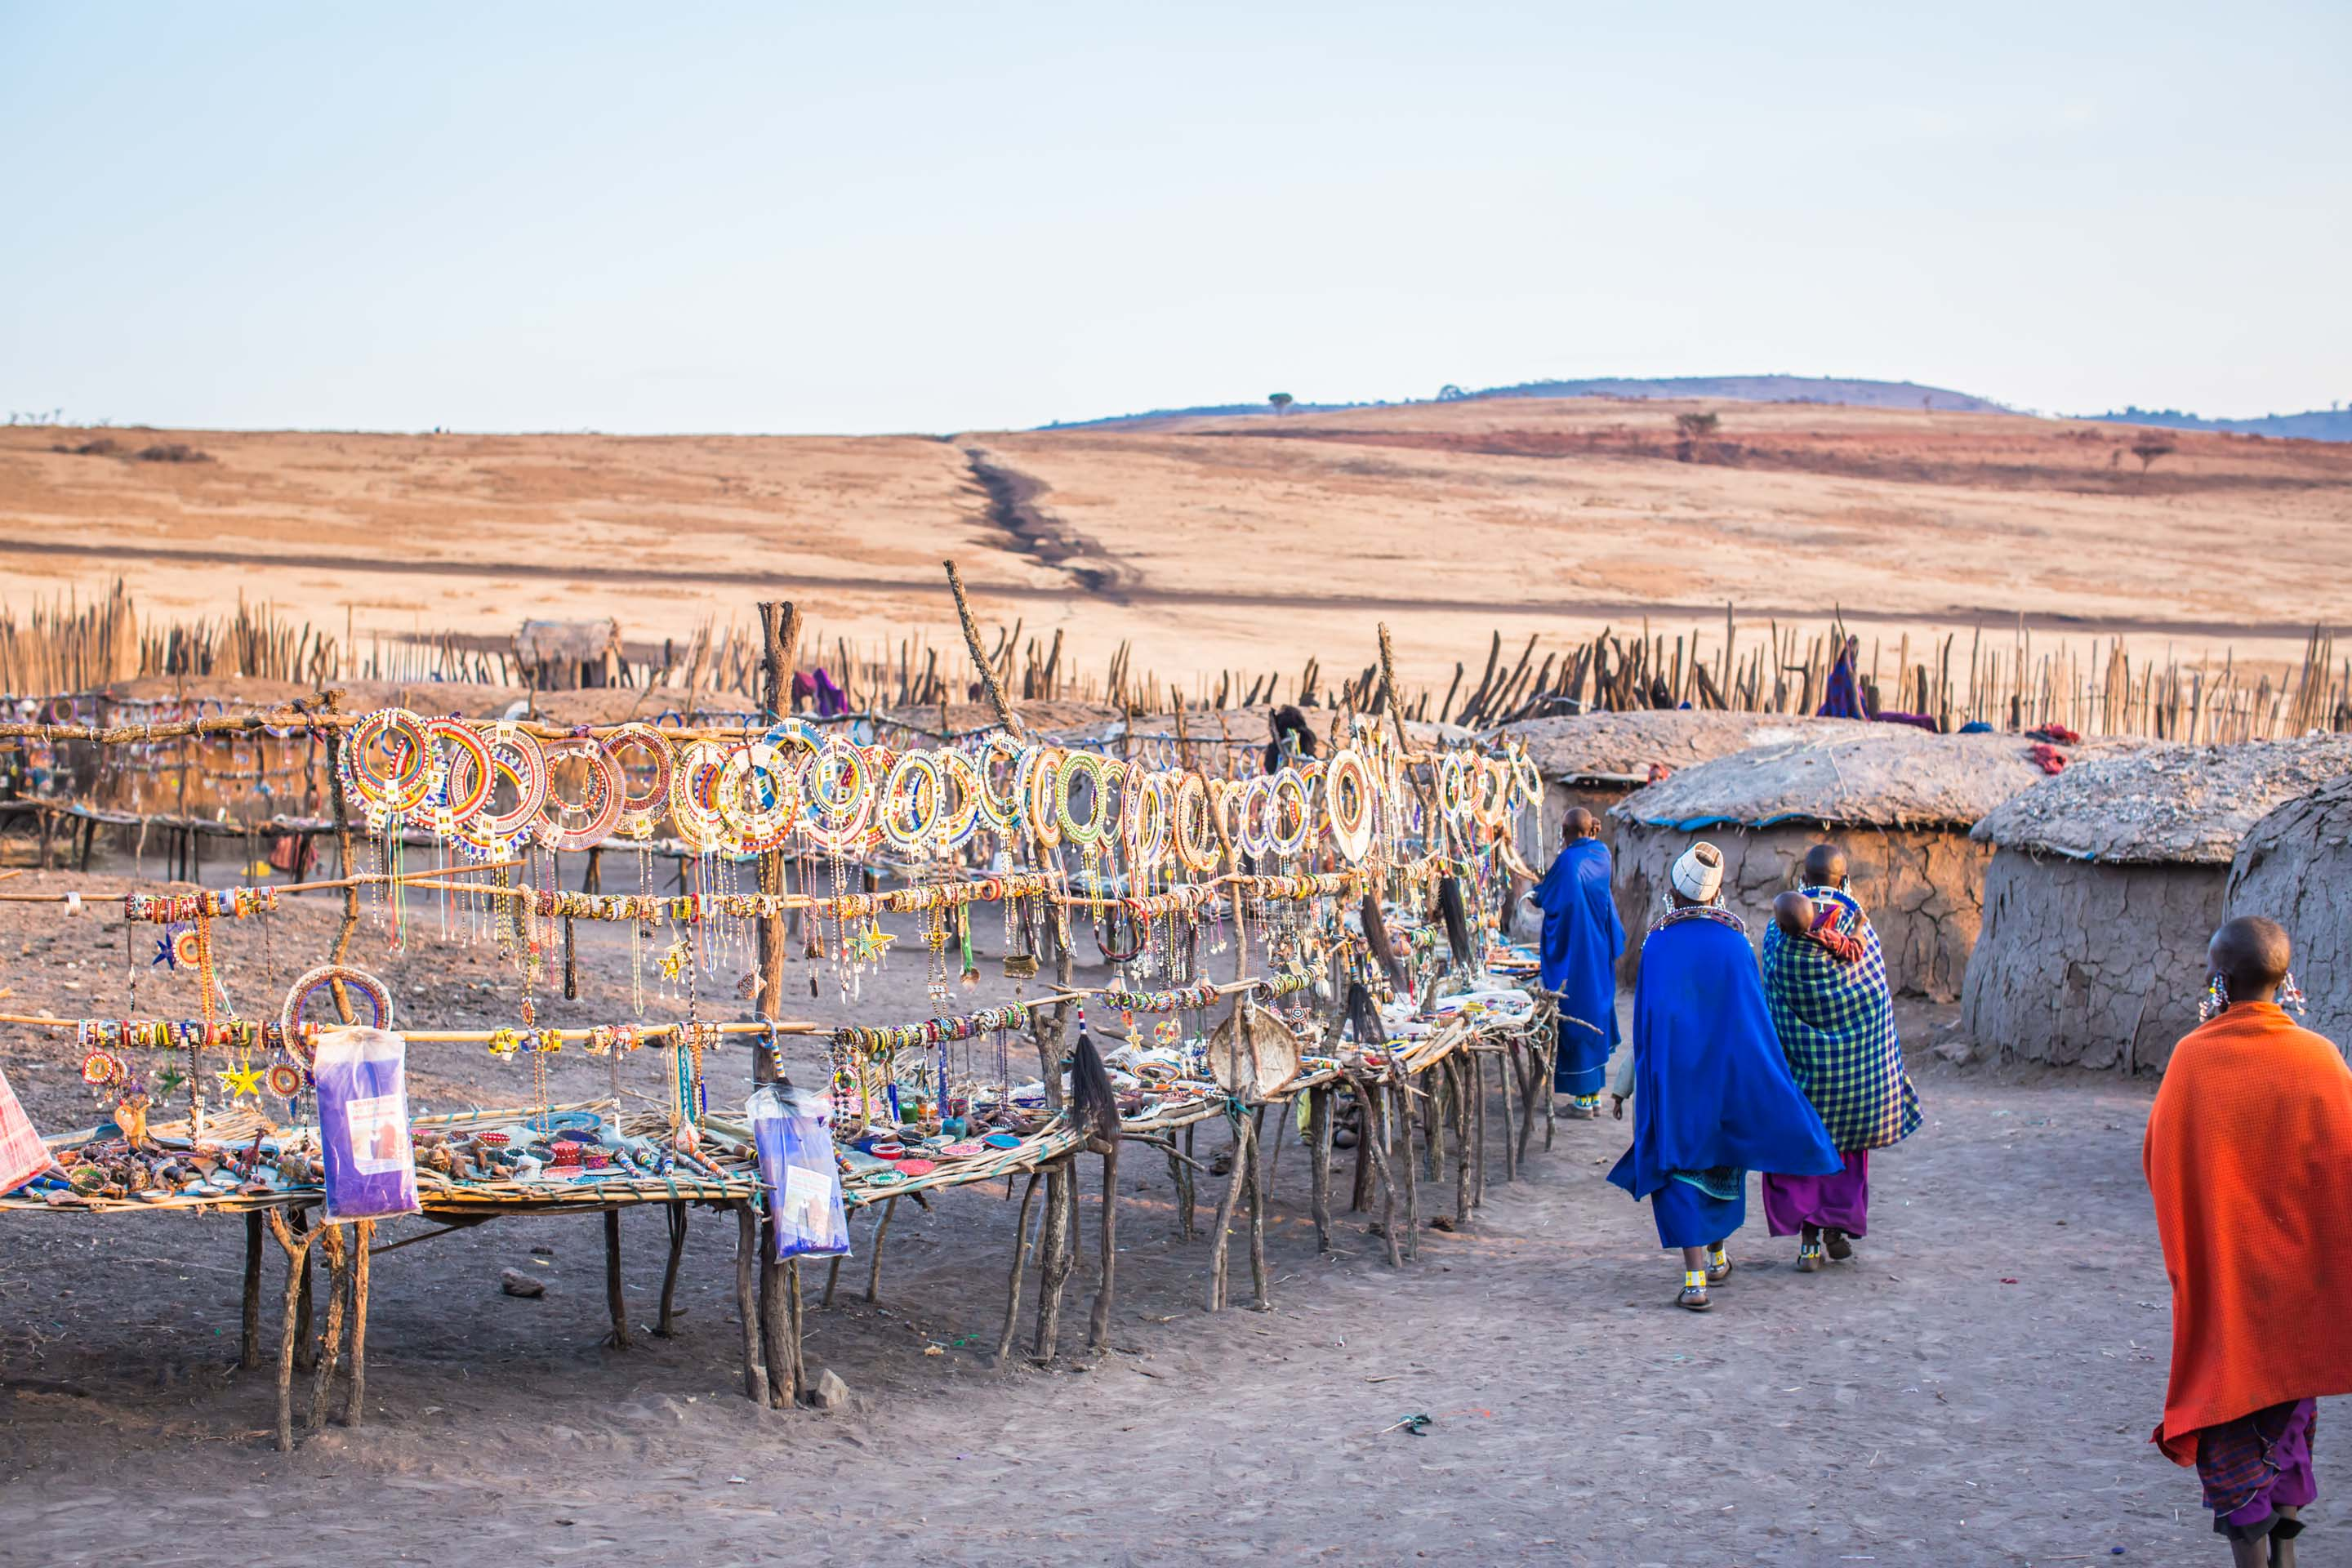 The local Massai women selling jewellery and crafts